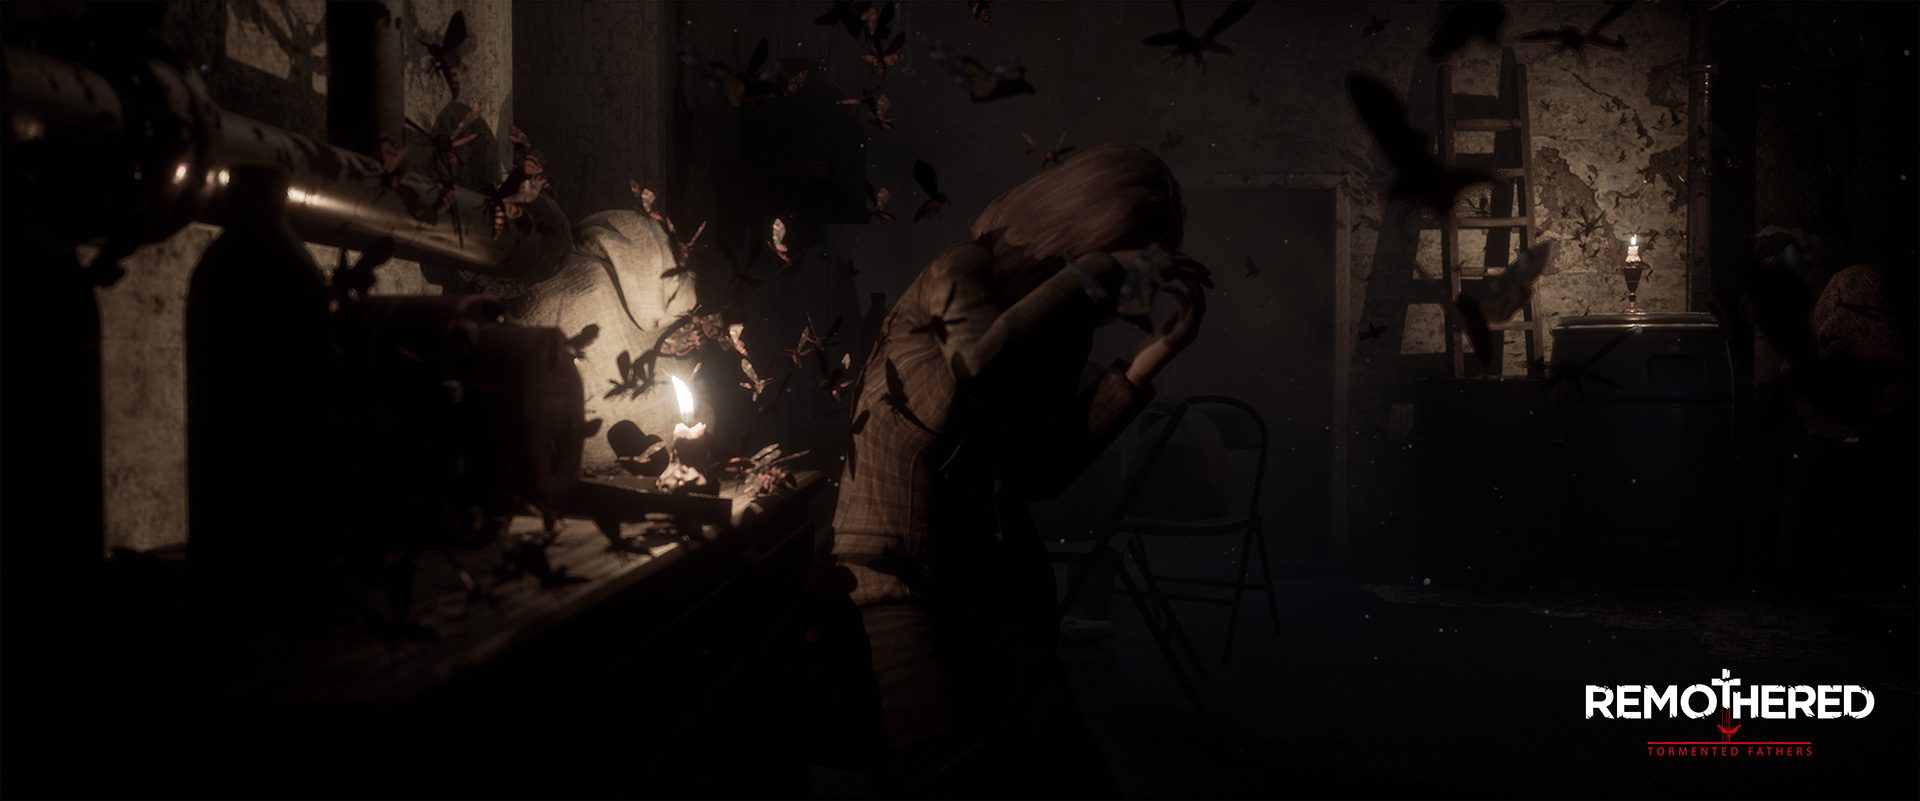 Remothered-Tormented-Fathers-10.jpg